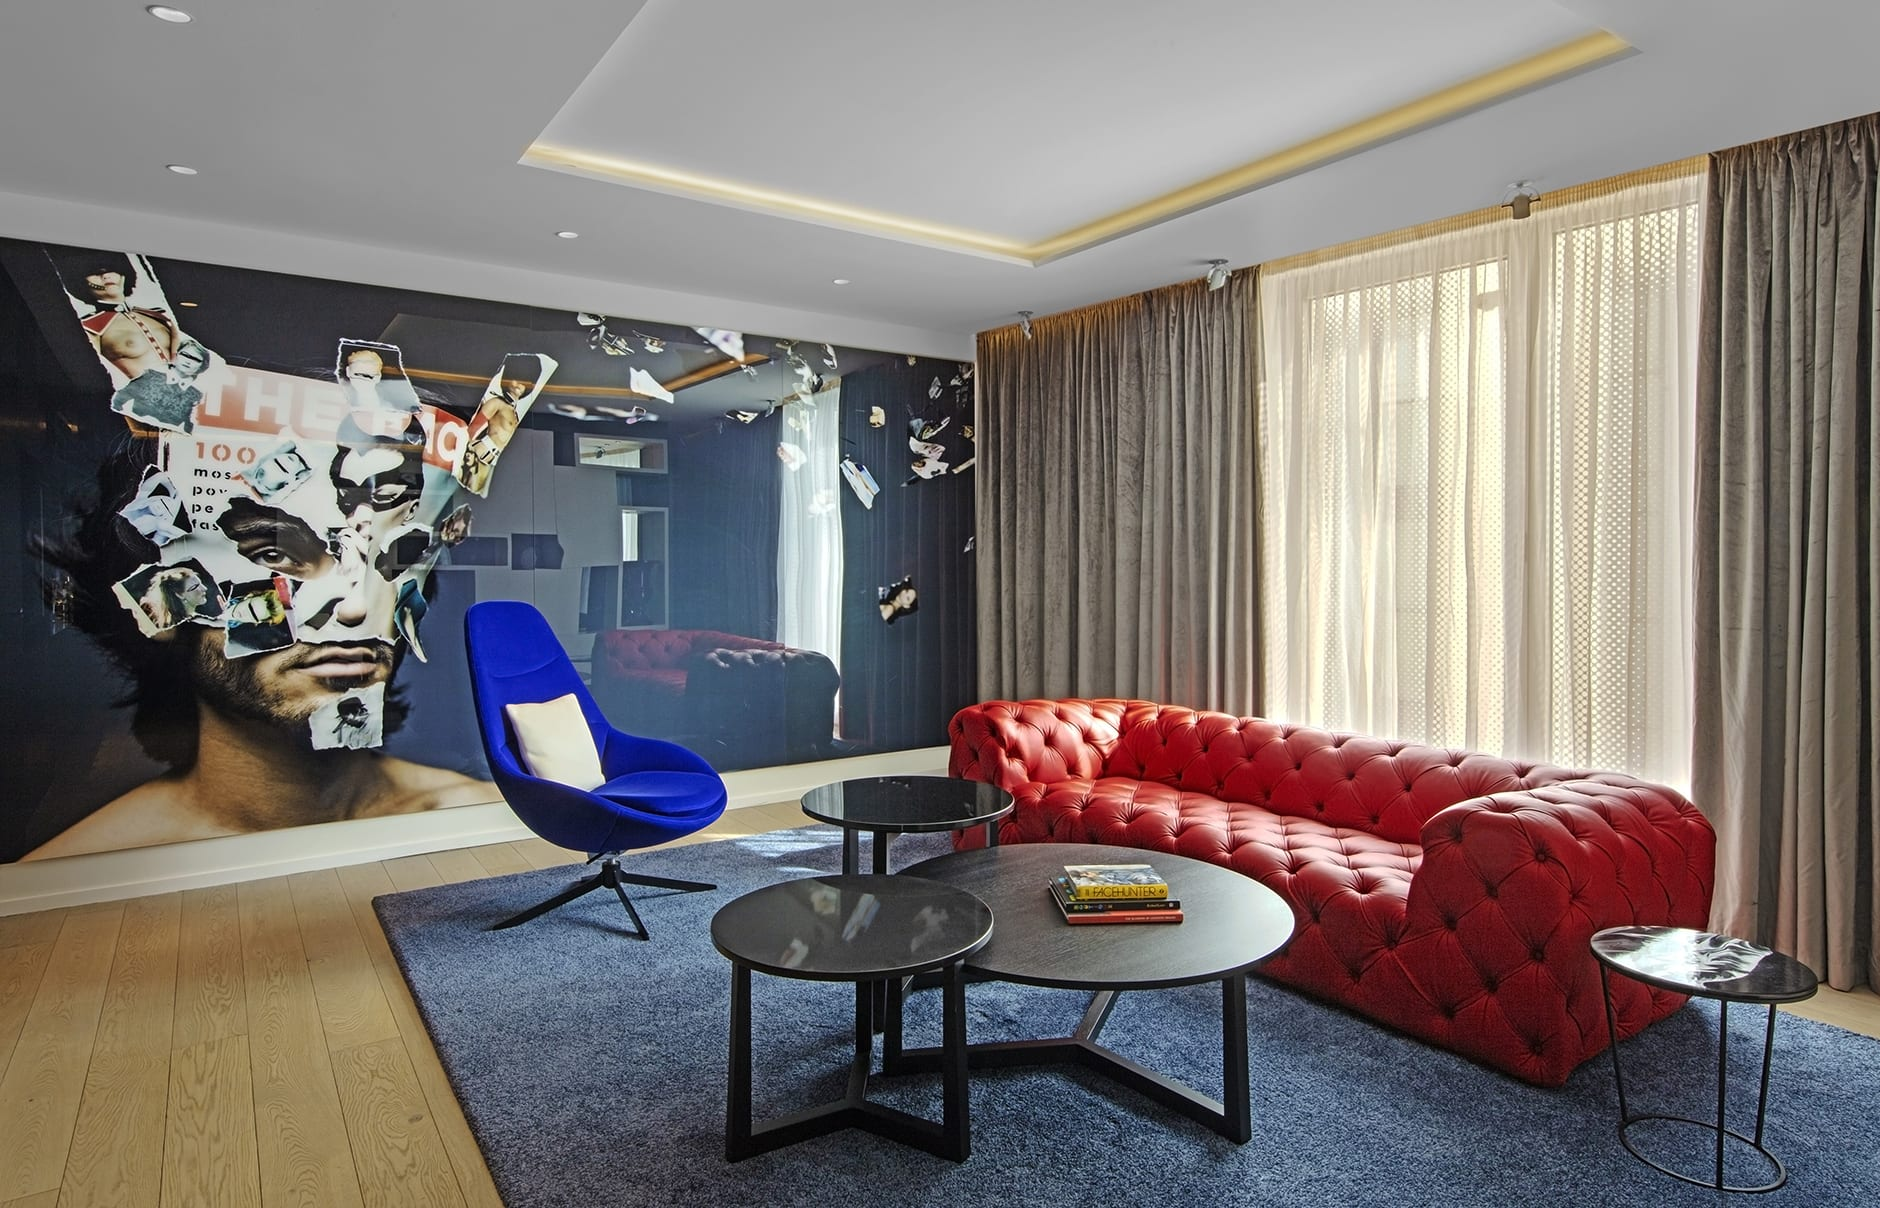 W London Leicester Square, London, UK. Hotel Review by TravelPlusStyle. Photo © Marriott International